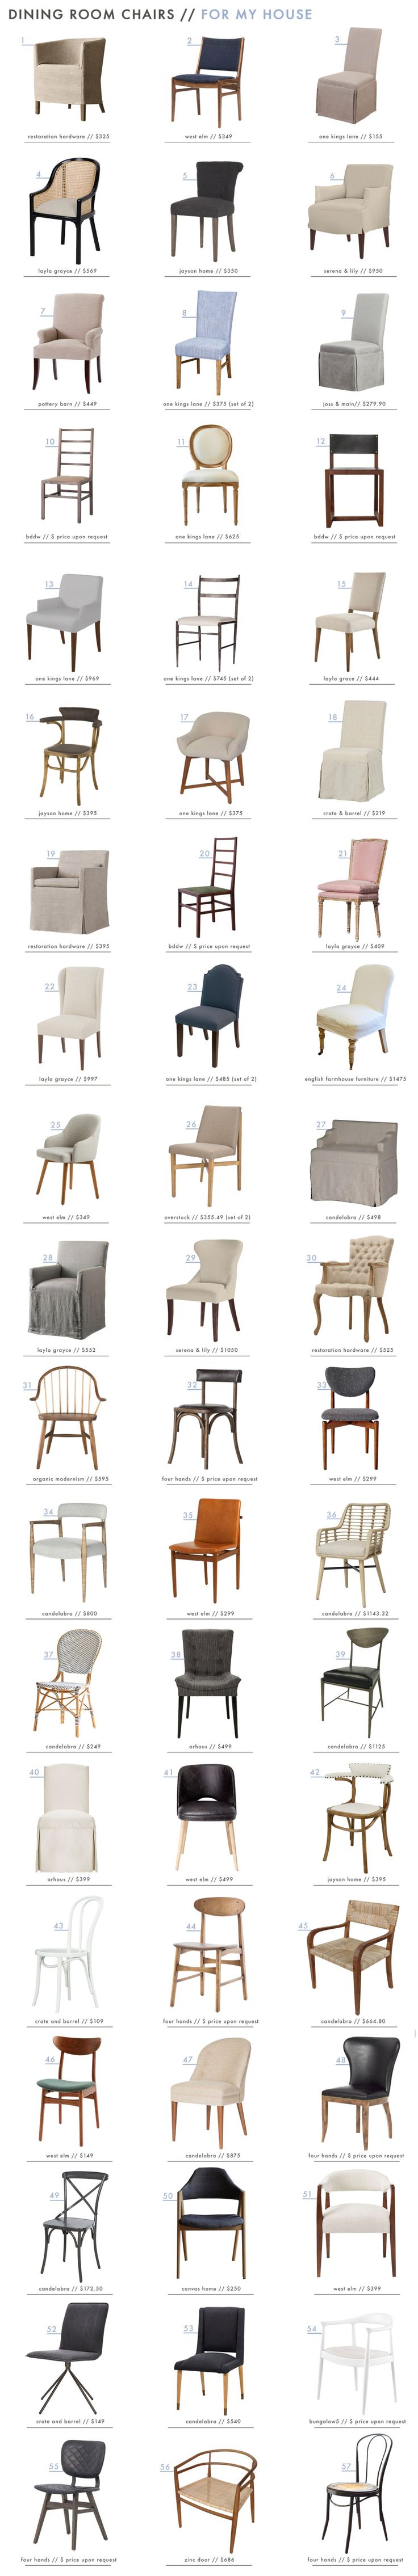 57 very pretty dining room chairs! https://emfurn.com/collections/bar-stools